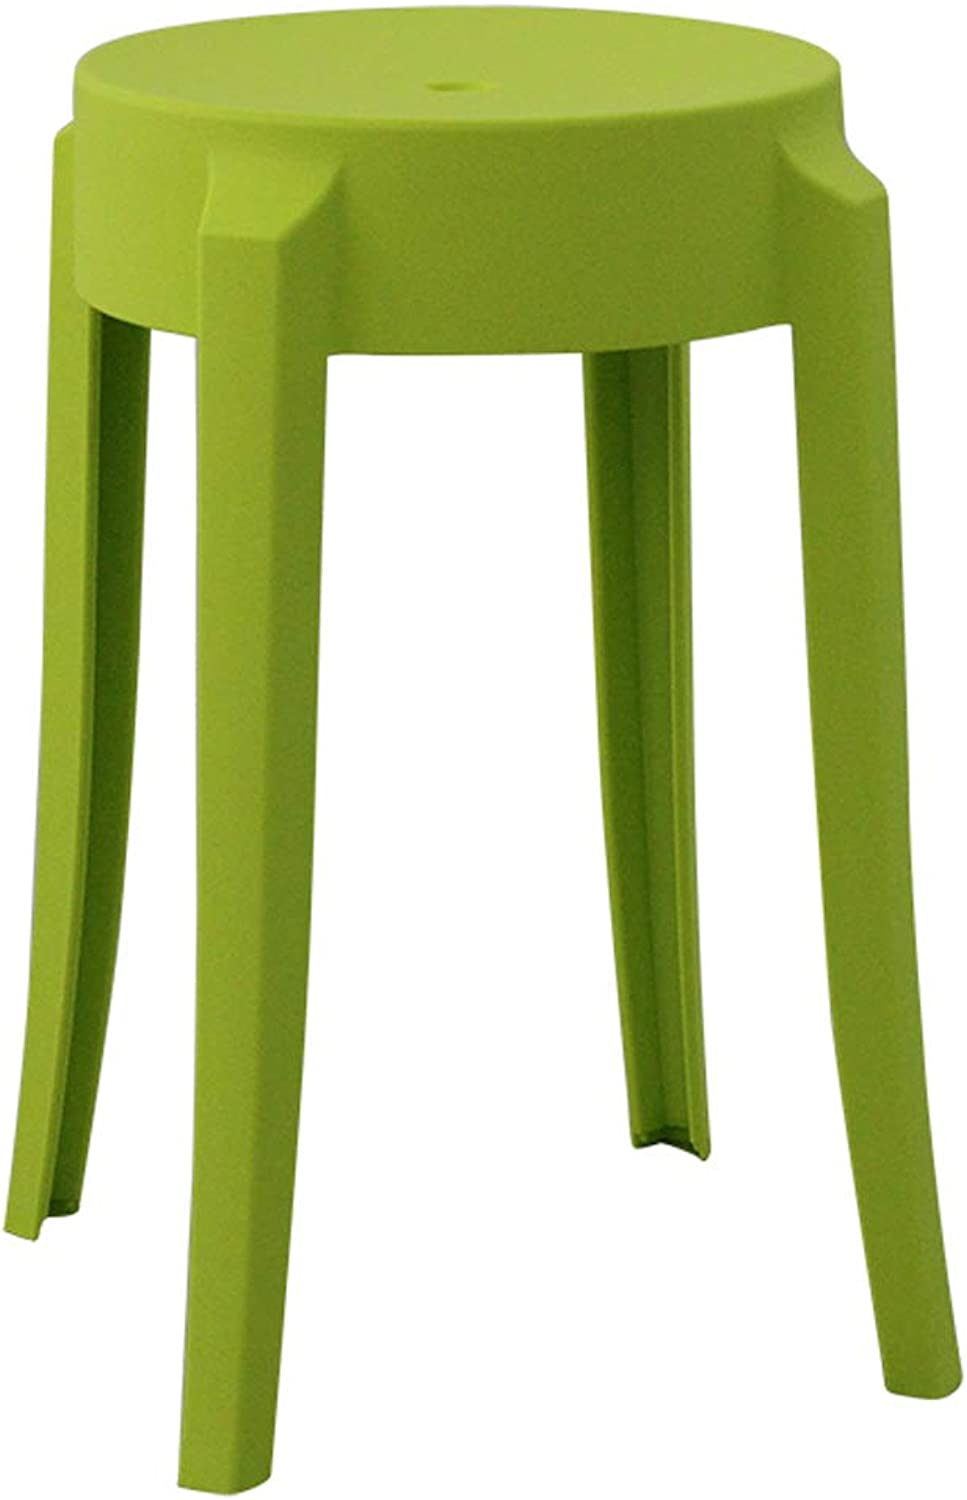 LRW Plastic Stools Thickened Adult Fashionable Small Stools, Modern Household High Stools, European Style Stool Chairs, Light Green